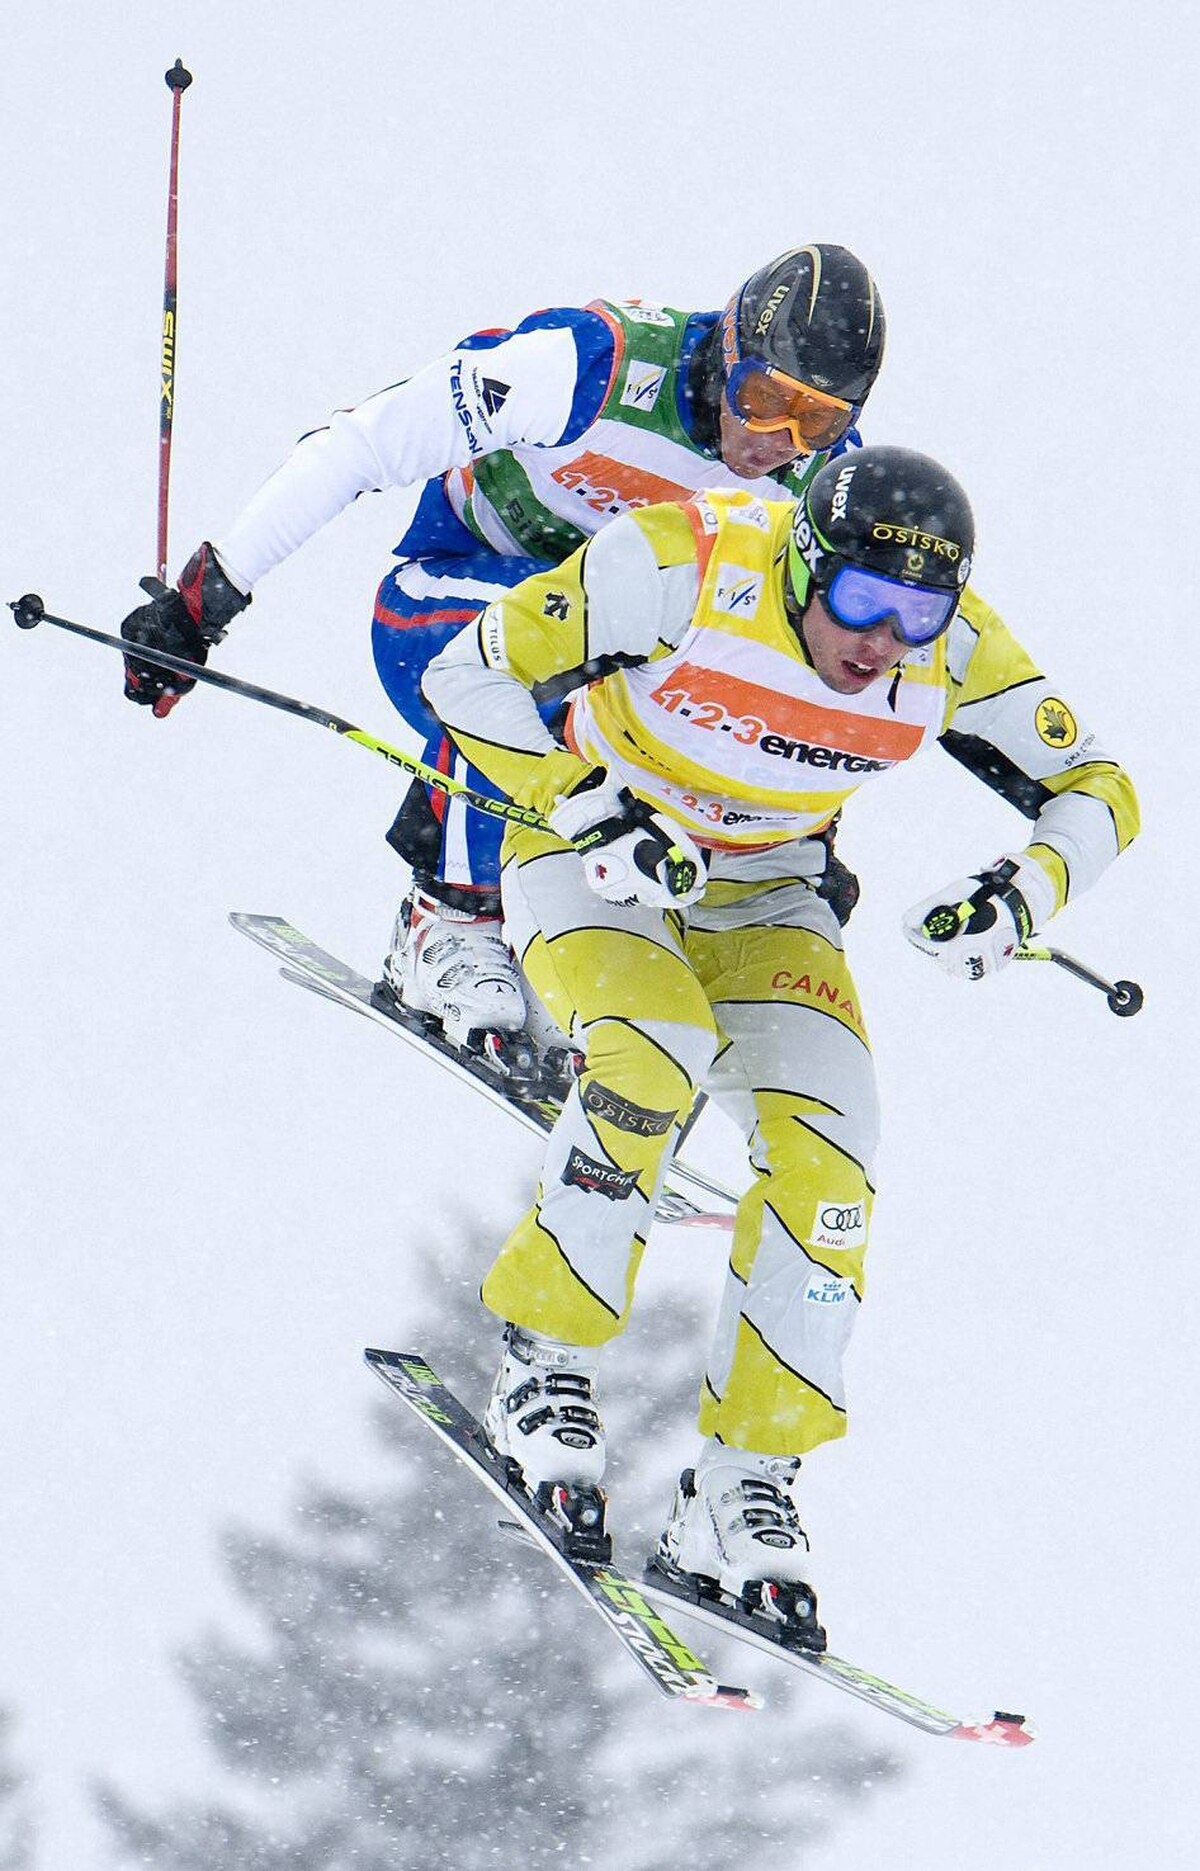 Canada's second placed David Duncan, front, and Russia's Ivan Anikin in action during the men's skicross quarter final at the World Cup ski event in Bischofswiesen, southern Germany , Sunday, Feb. 26, 2012.